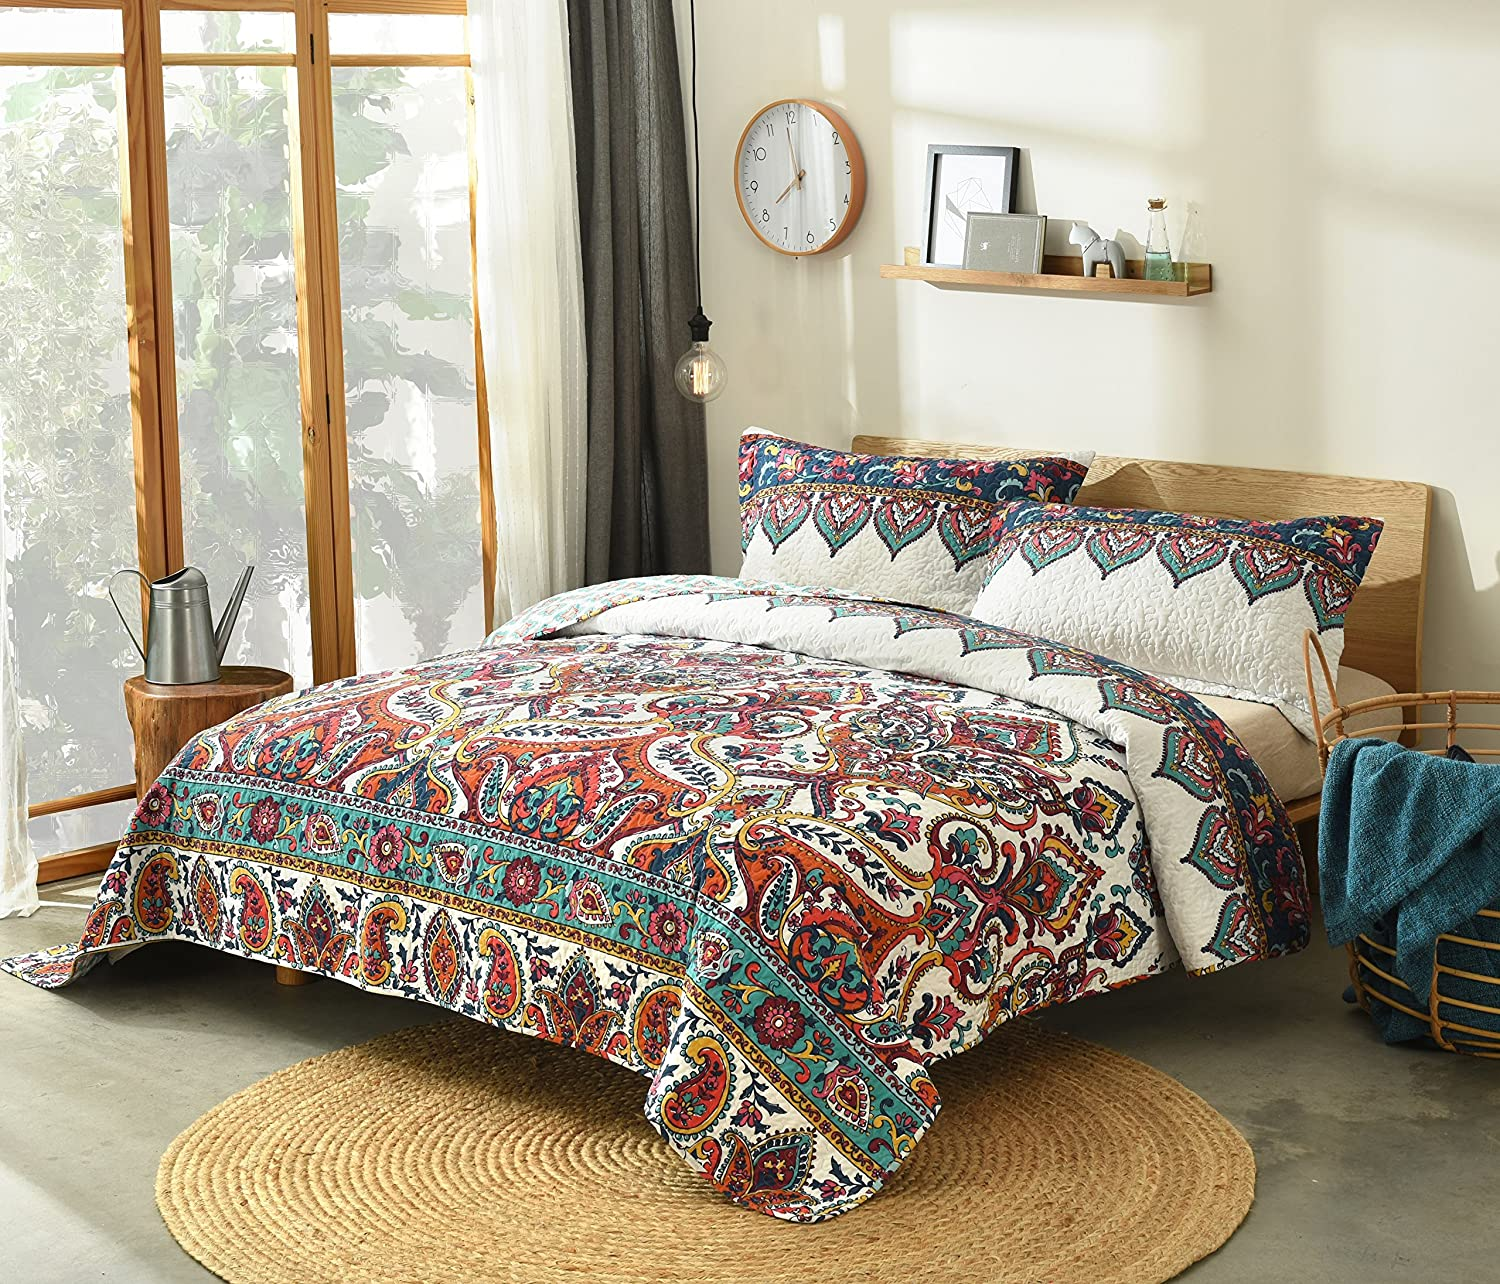 Amazon.com: DaDa Bedding Bohemian Paisley Bedspread - Earthy Meadow Quilted  Coverlet Set - Multi-Colorful Floral Print - King - 3-Pieces: Home & Kitchen